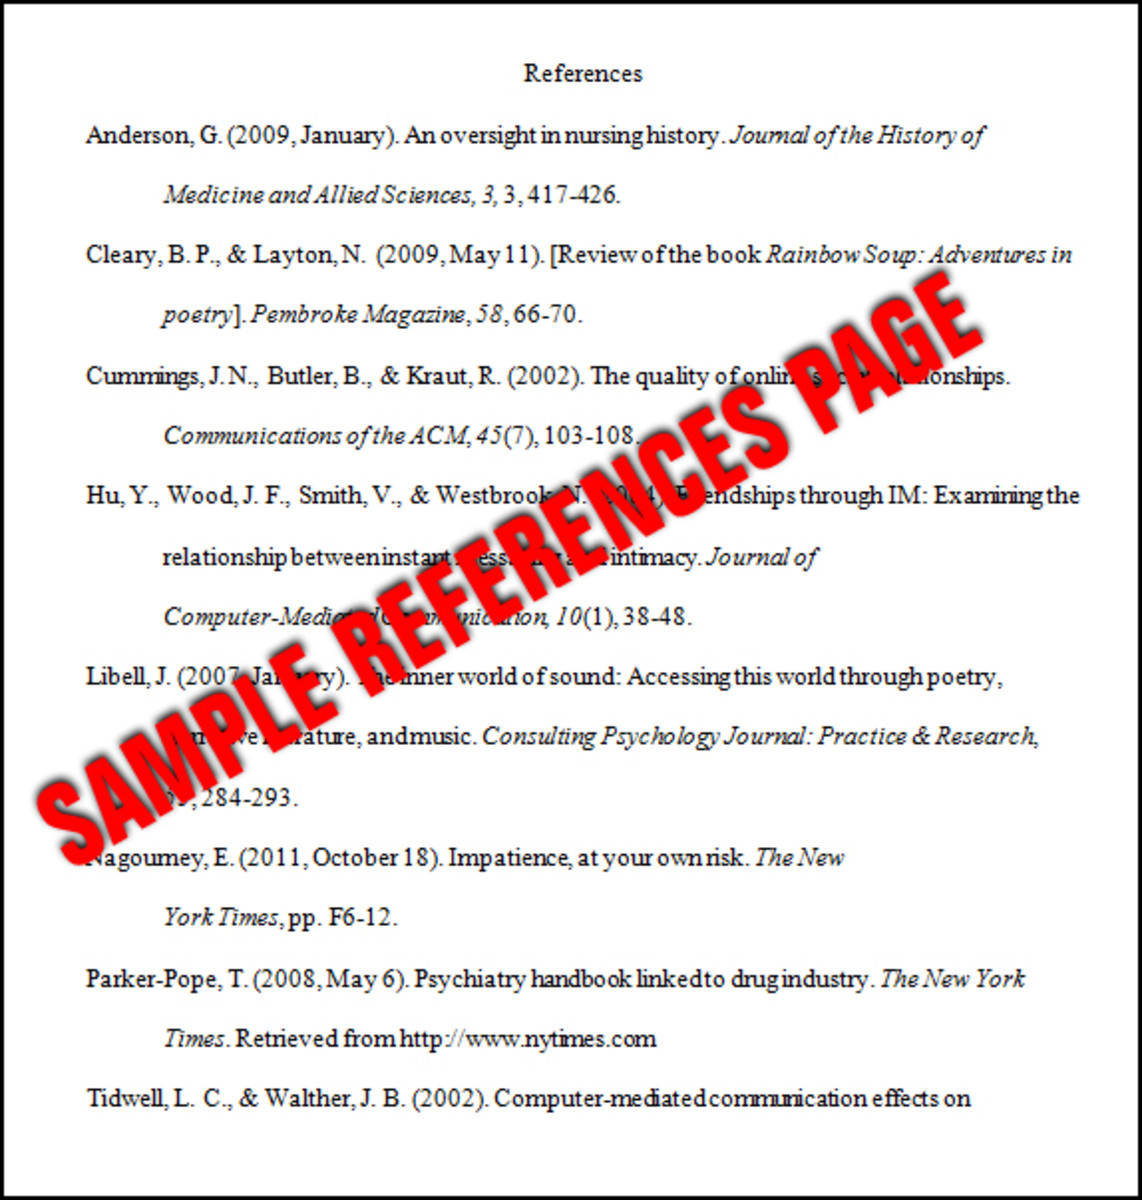 sample reference list page in apa style